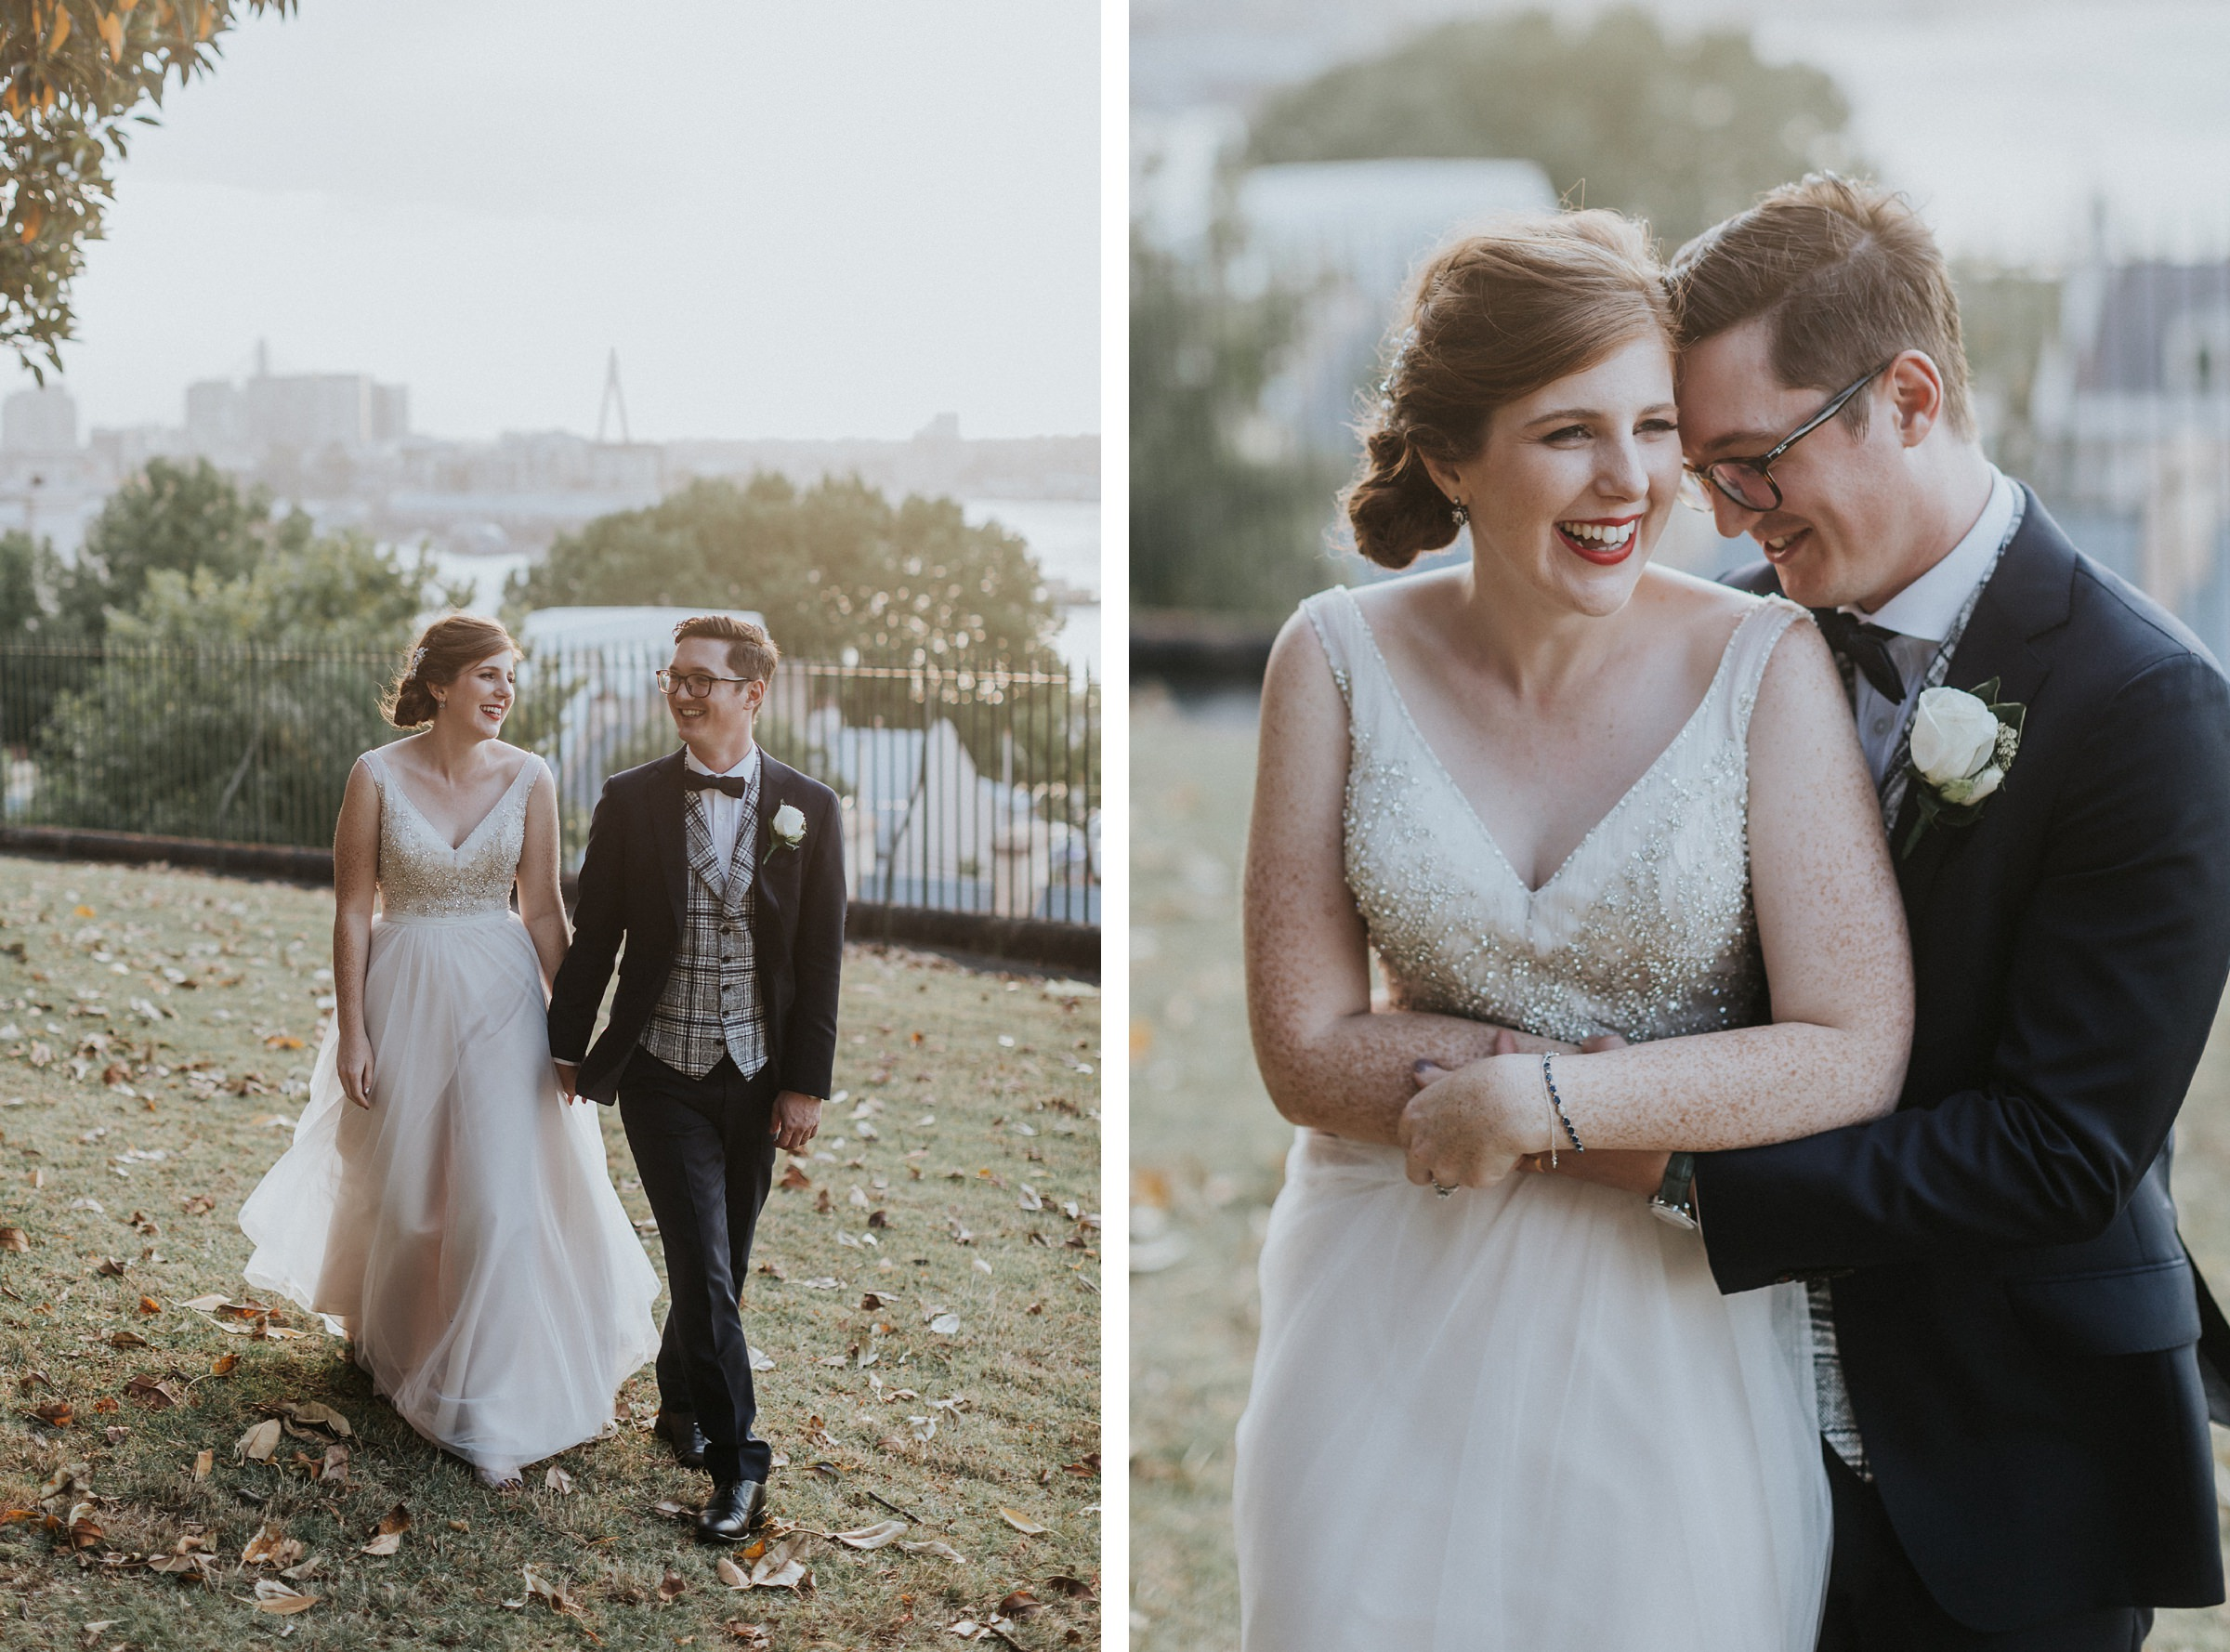 sydney observatory hill wedding portraits during golden hour